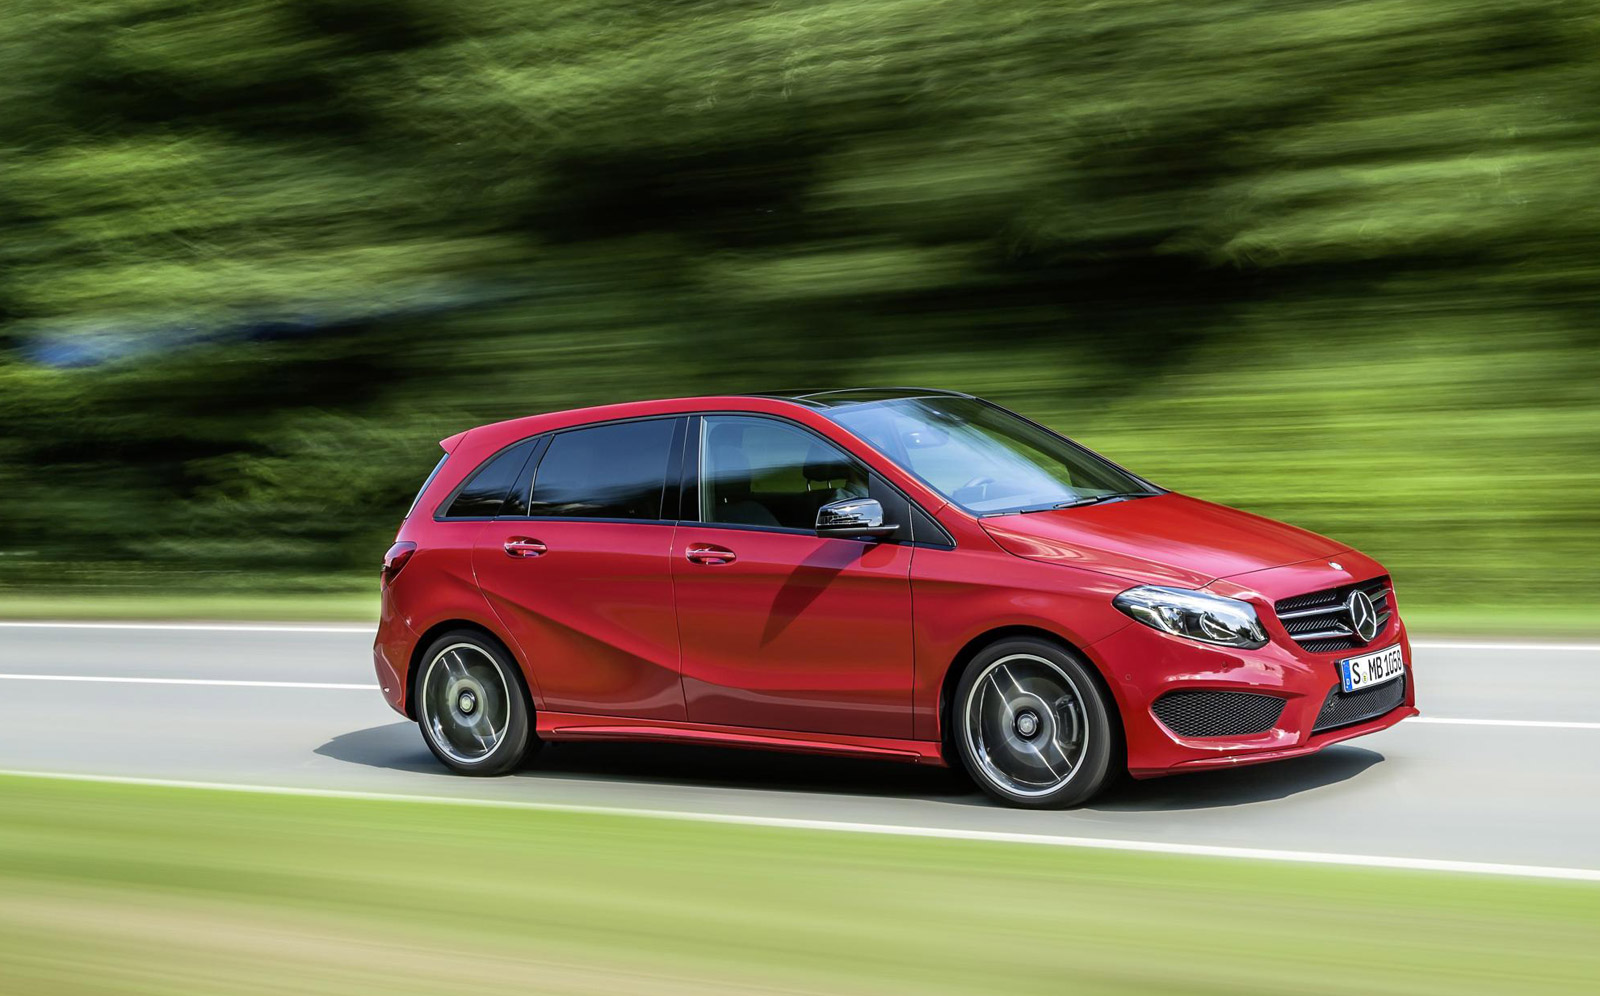 Mercedes Benz mercedes benz a class : 2015 Mercedes-Benz B-Class Gets Sporty New Look And More Tech